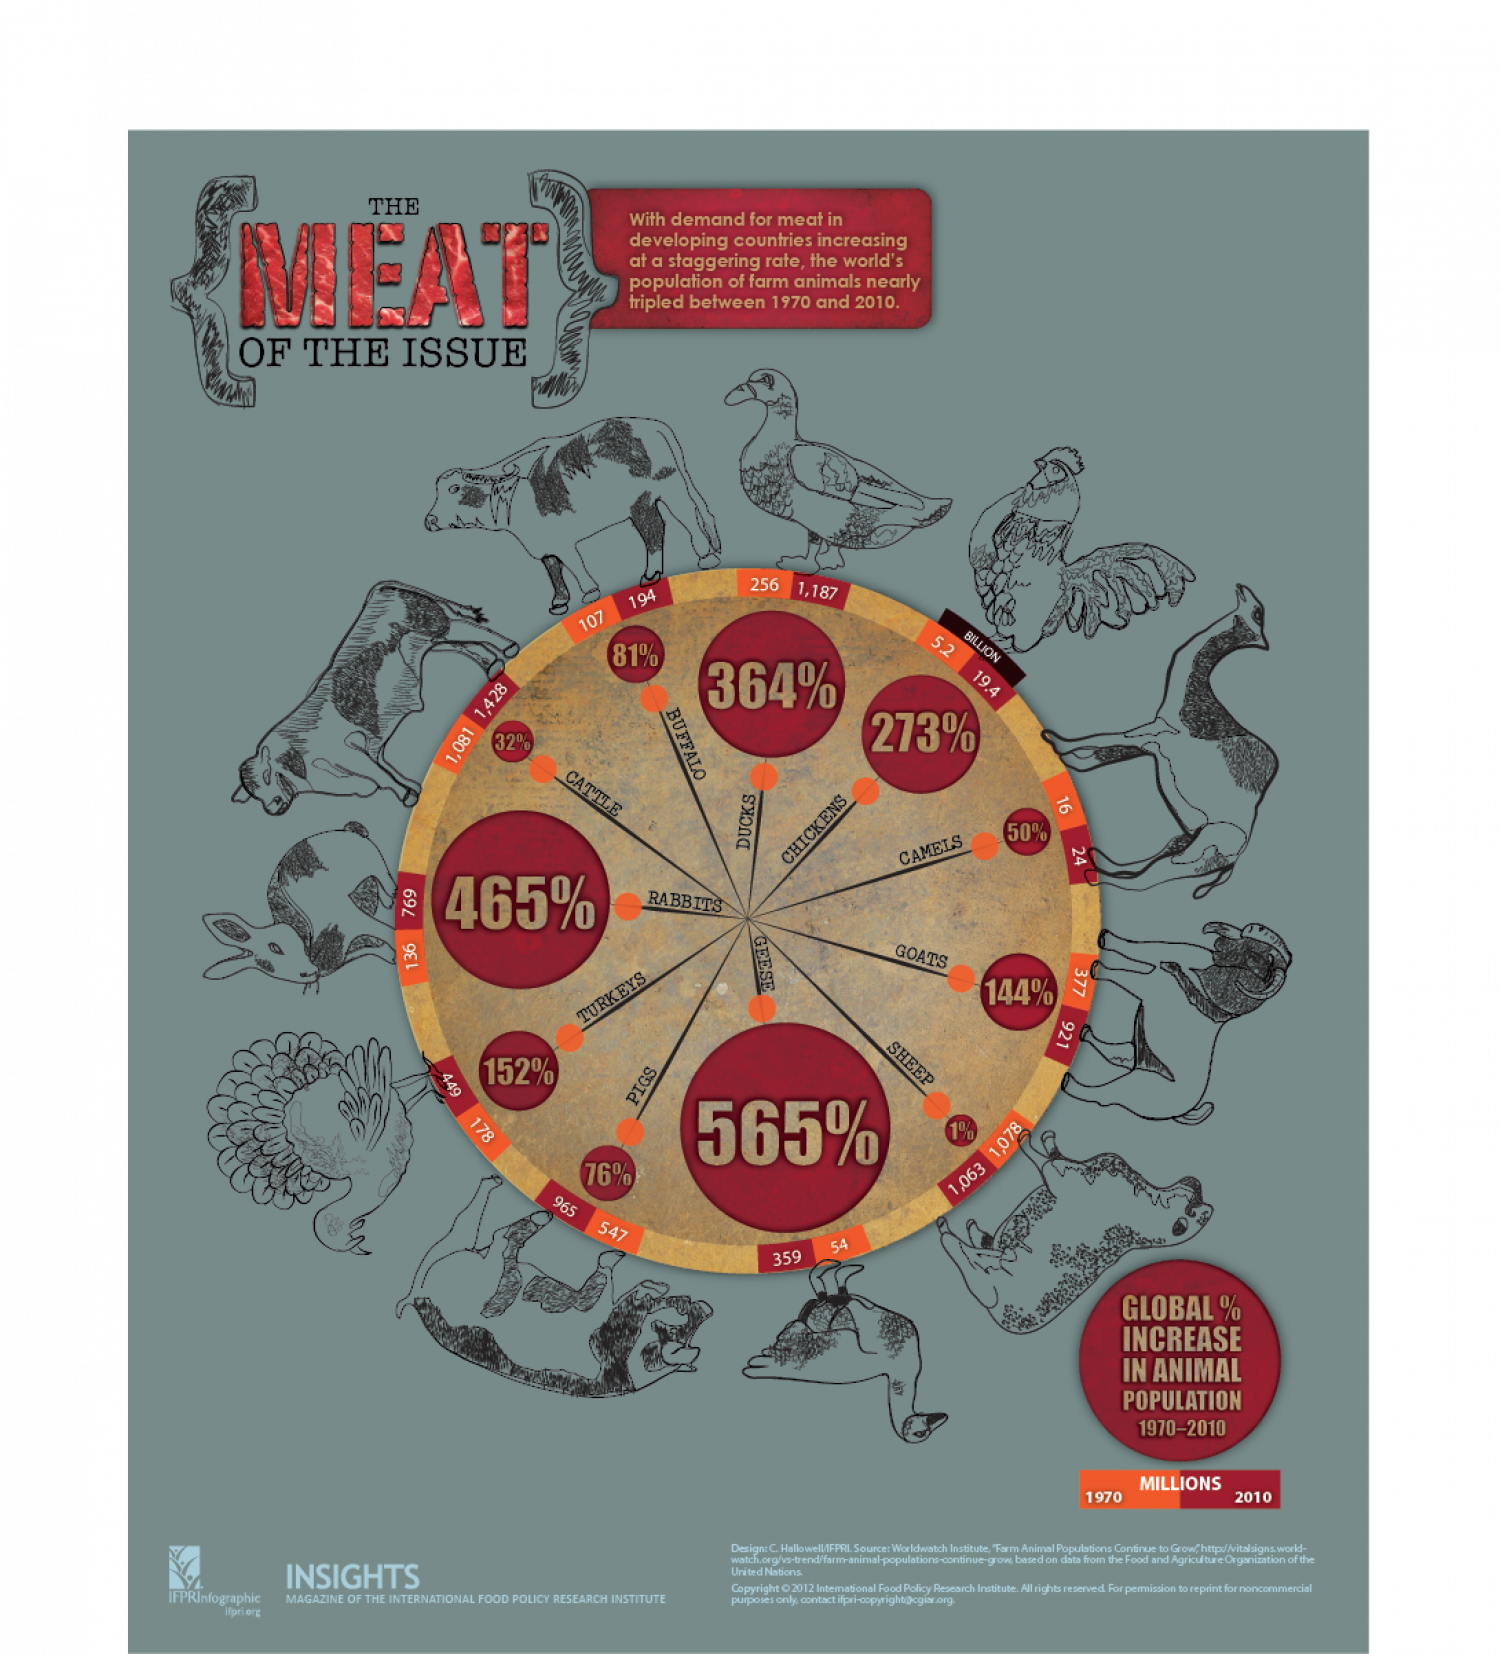 The Meat of the Issue Infographic